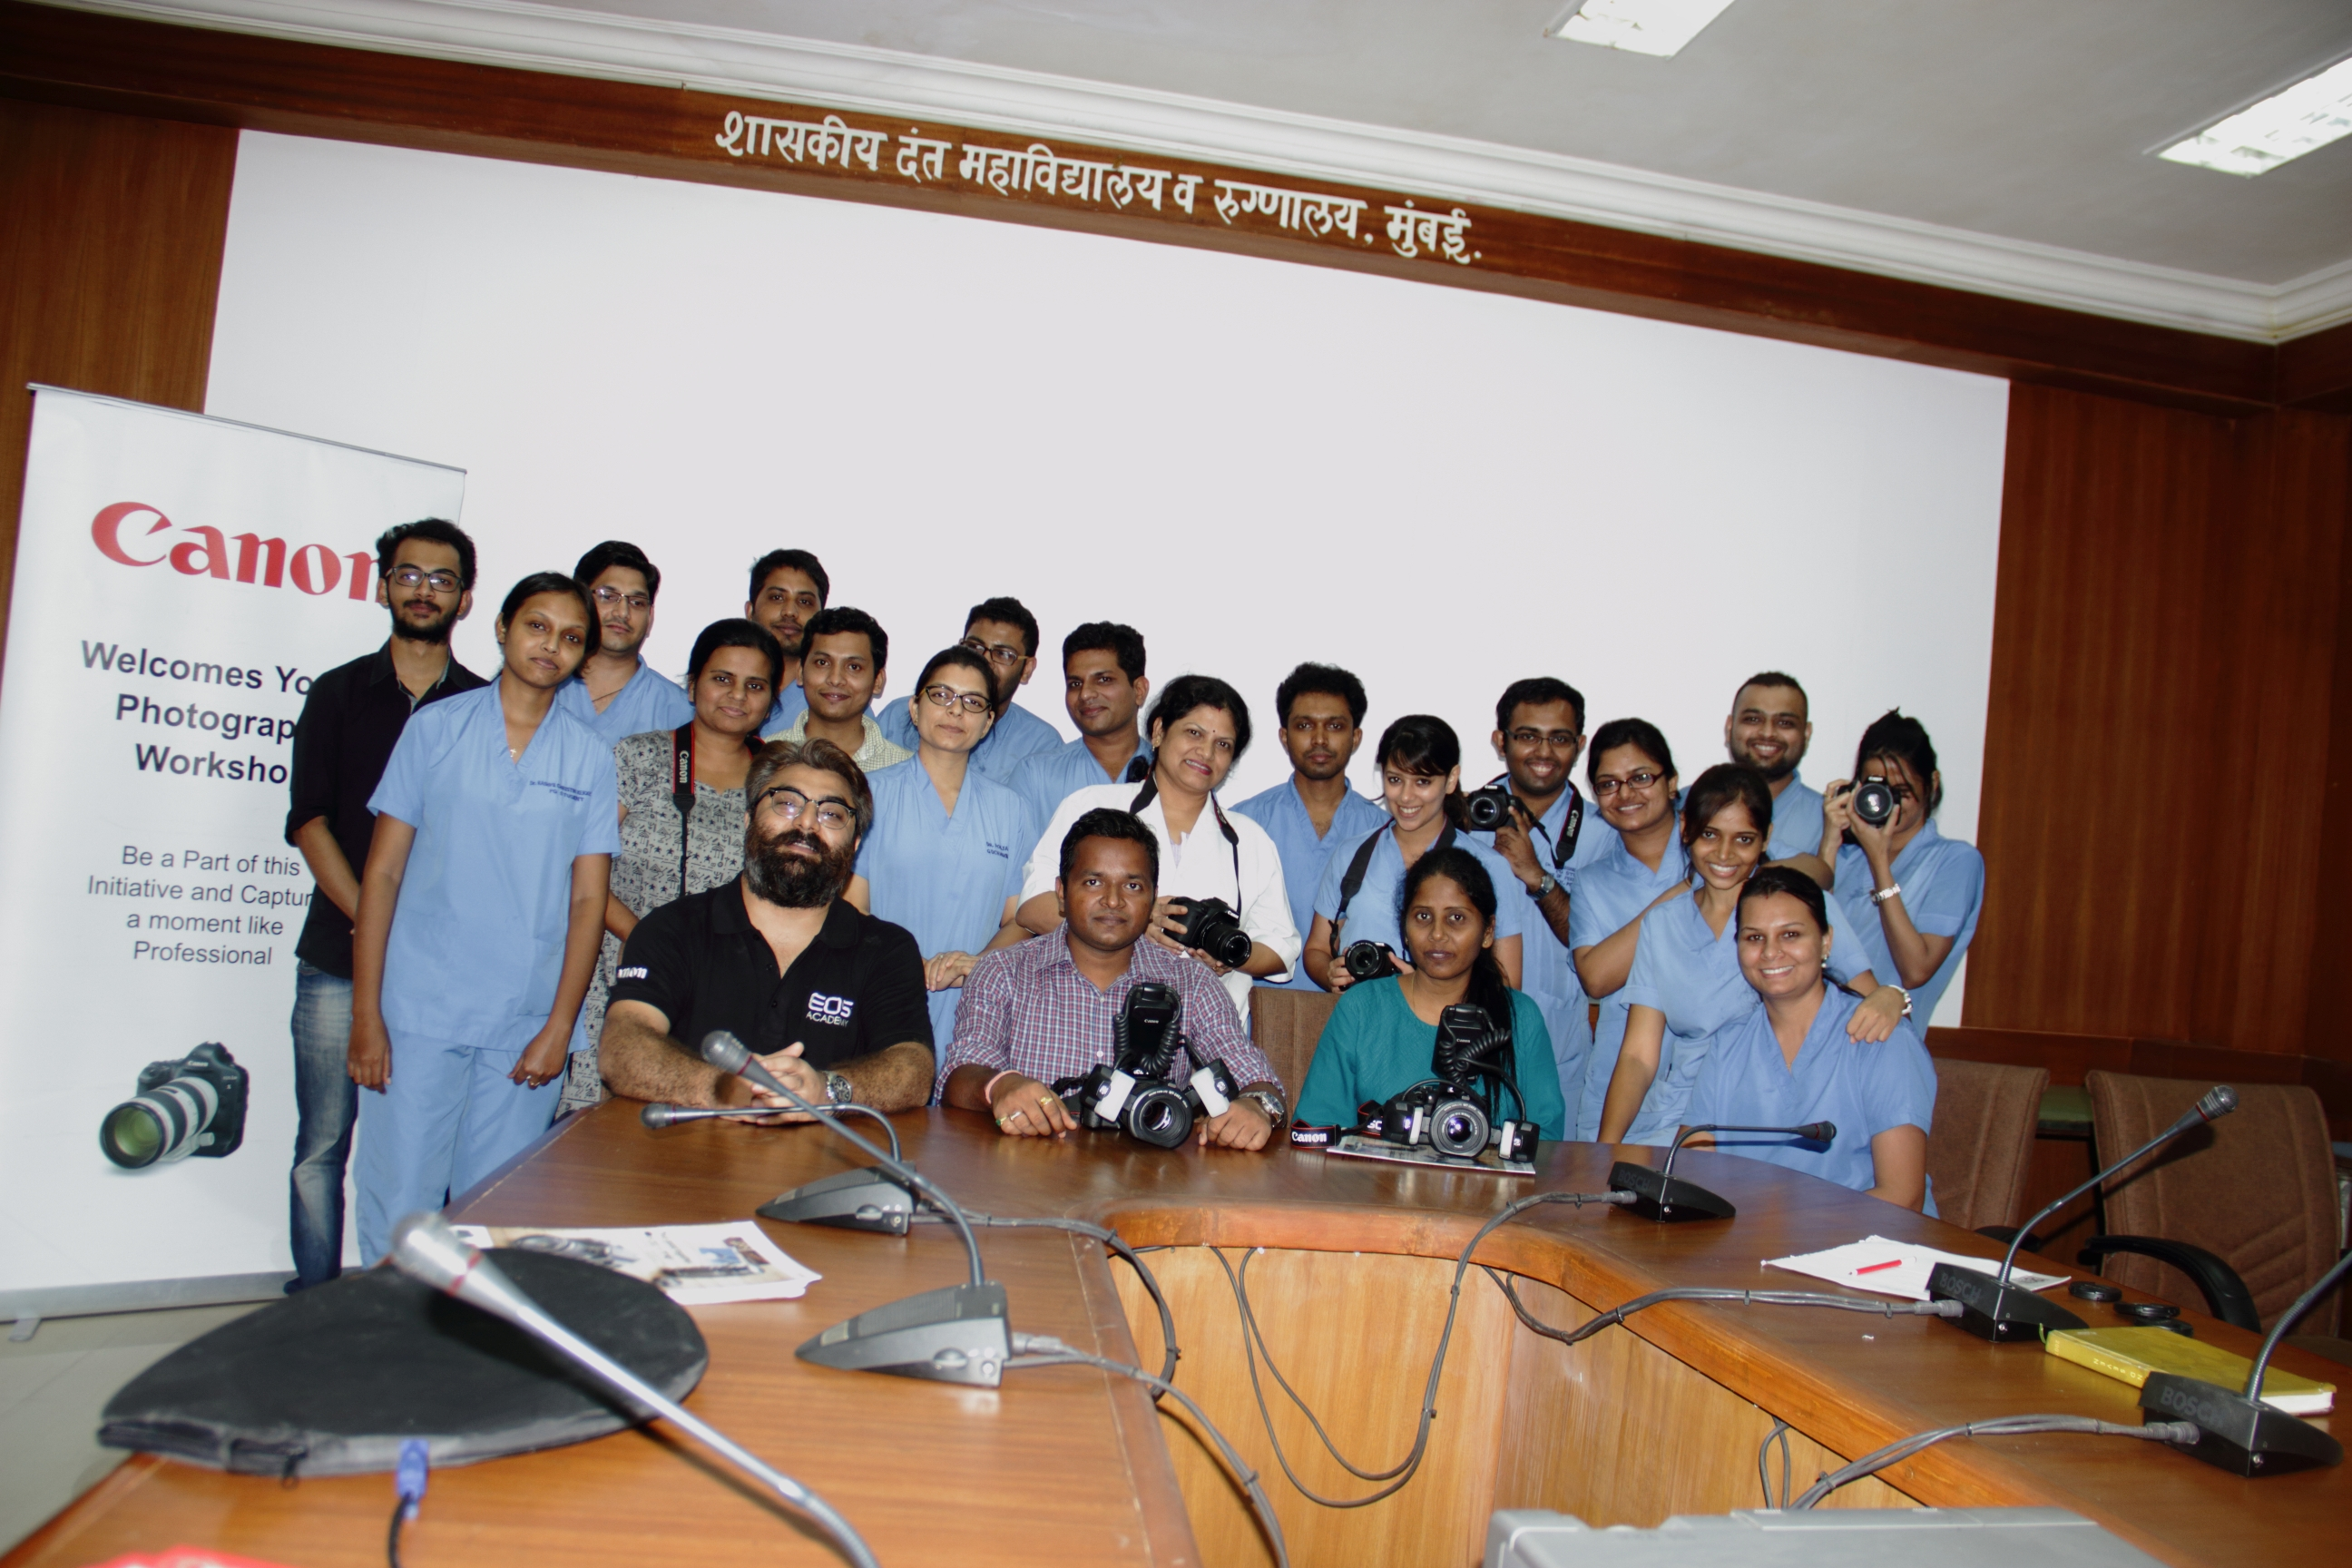 Dental Photography workshop at Government dental college (GDC MUMBAI) Mumbai